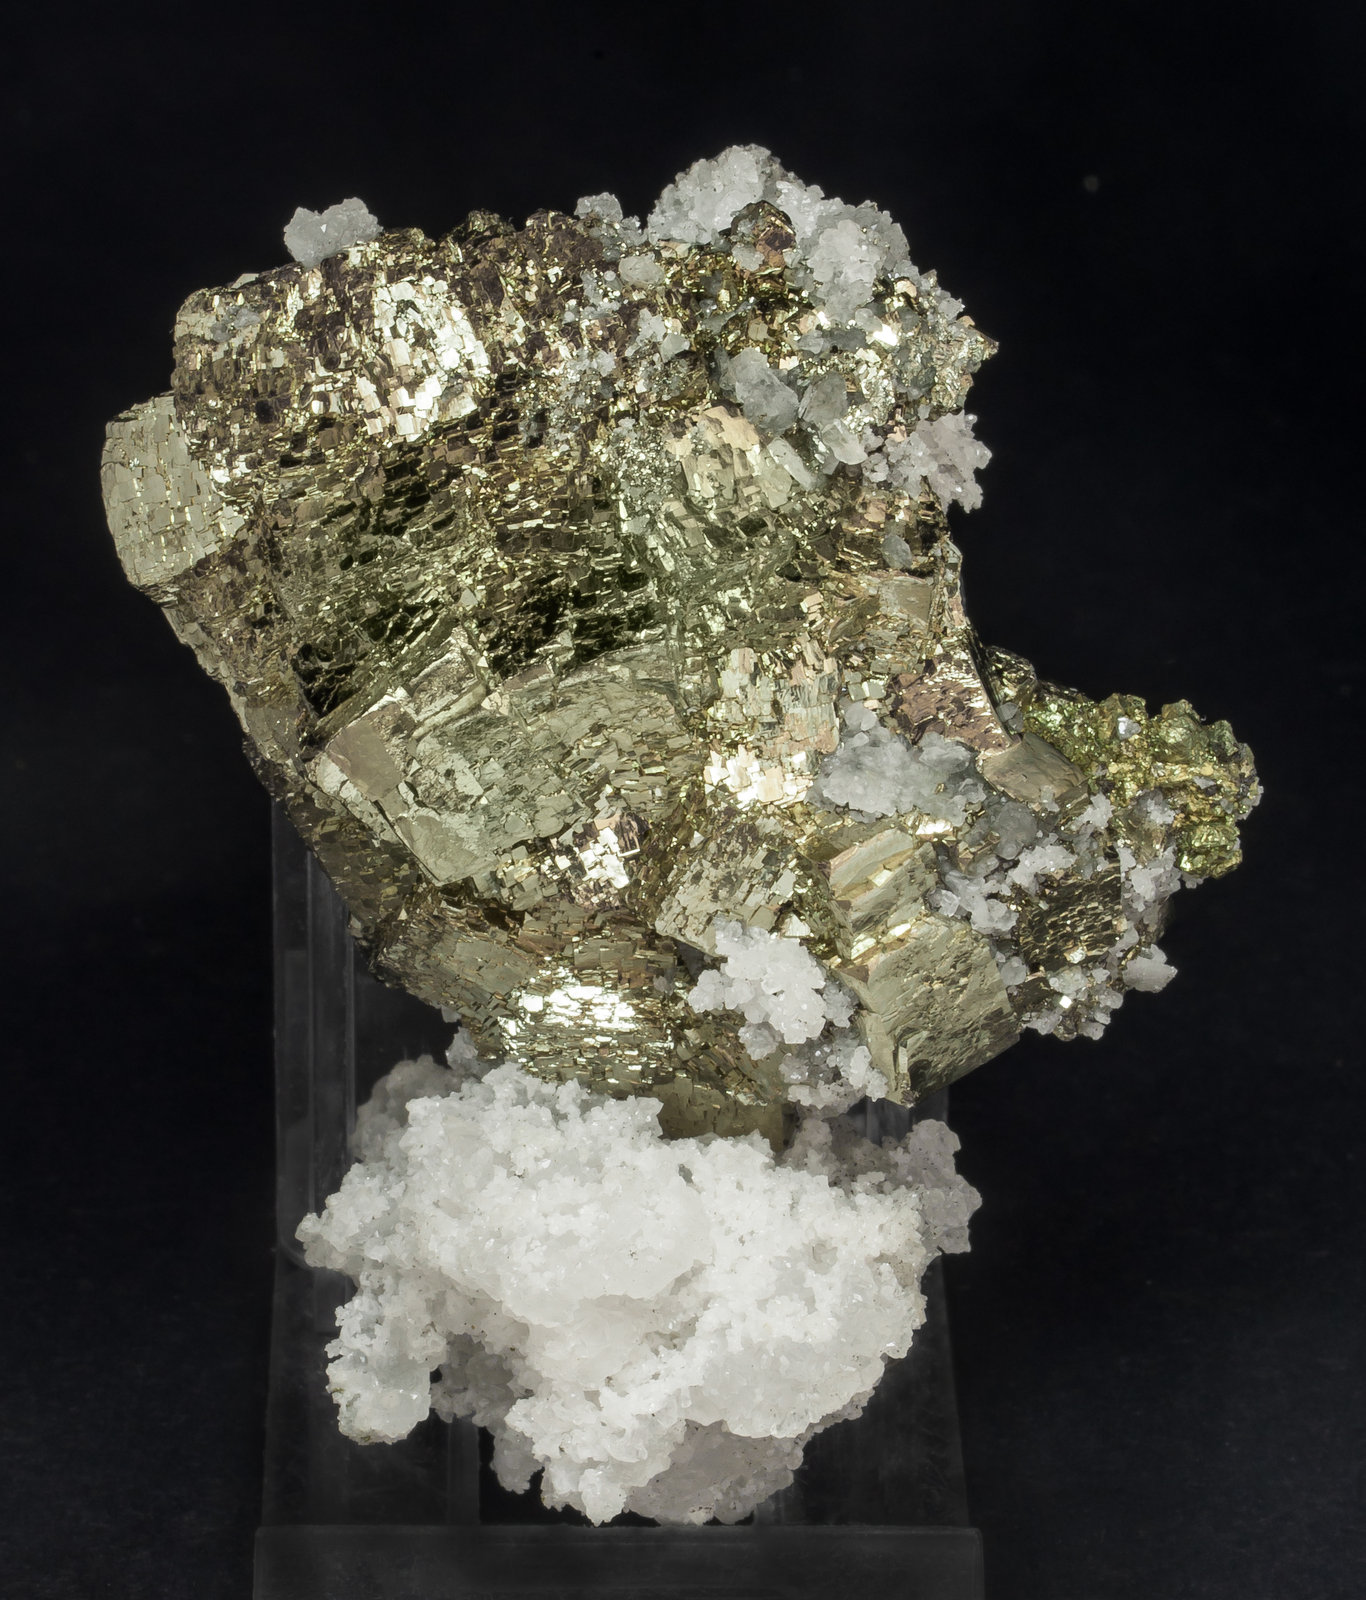 specimens/s_imagesAM0/Pyrite-ET47AM0s.jpg